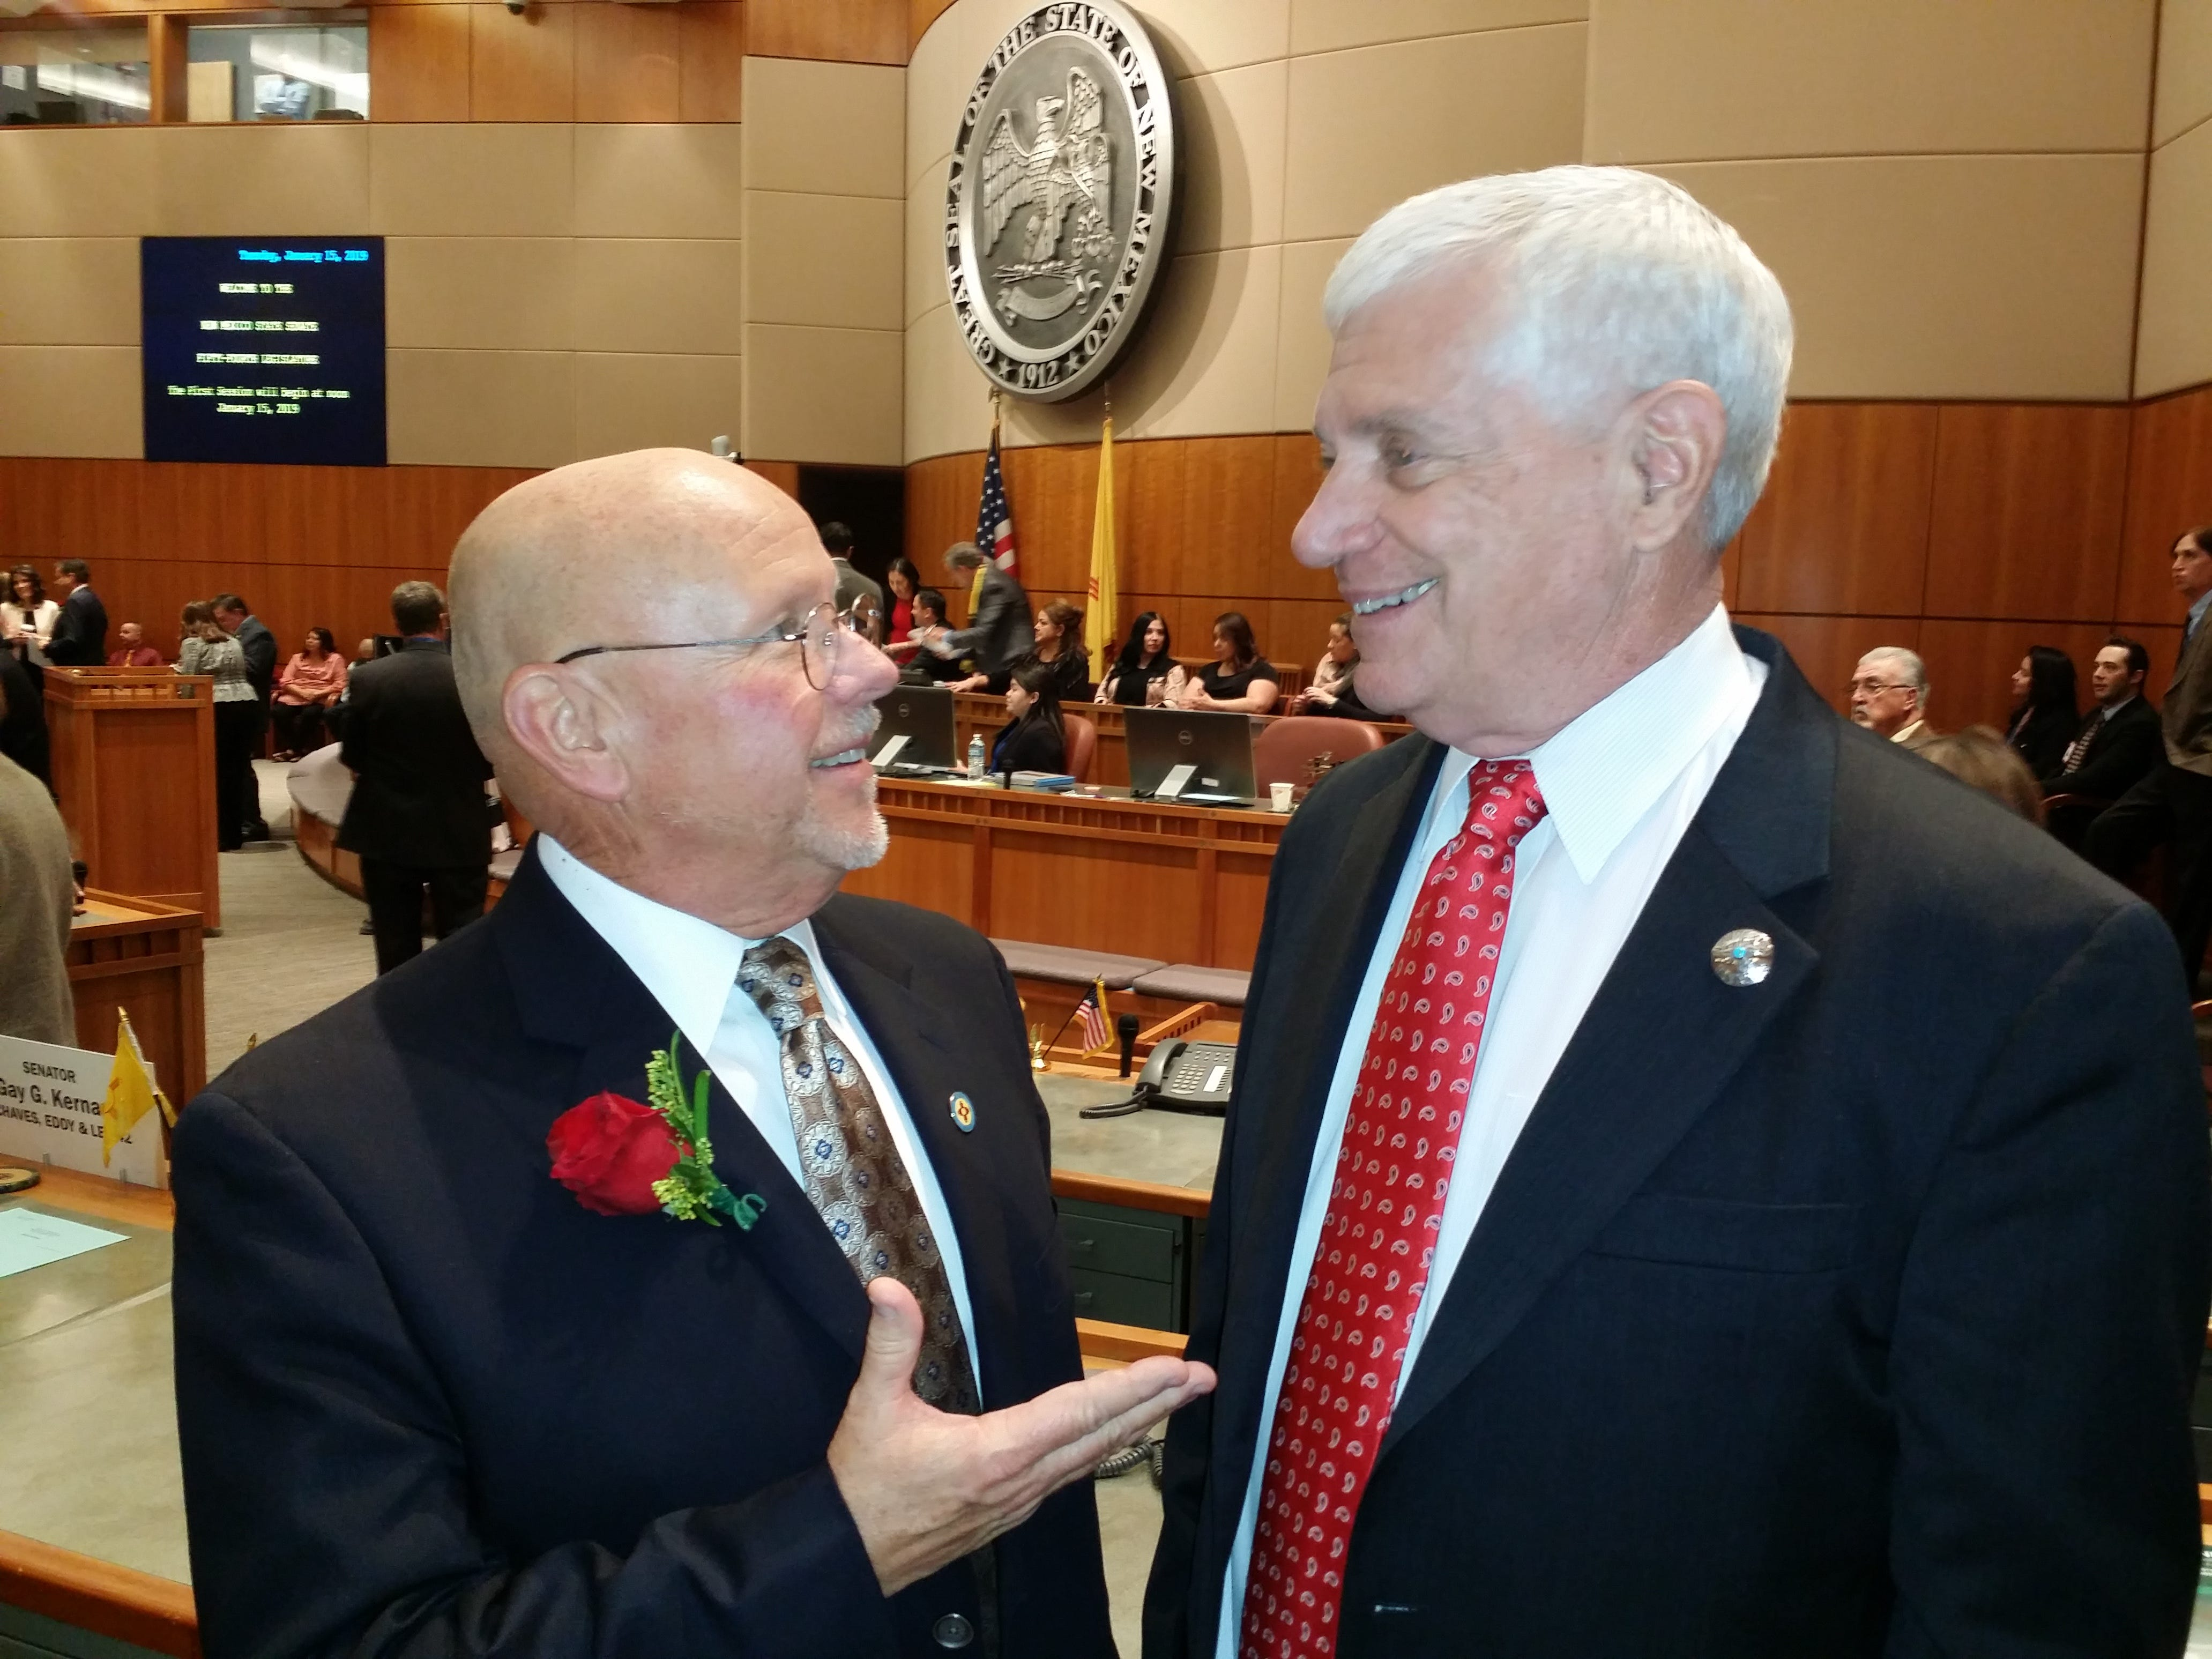 Senator Bill Burt, left, and Senator Ron Griggs, right,  visit prior to opening day ceremonies at the Roundhouse in Santa Fe Jan. 15.